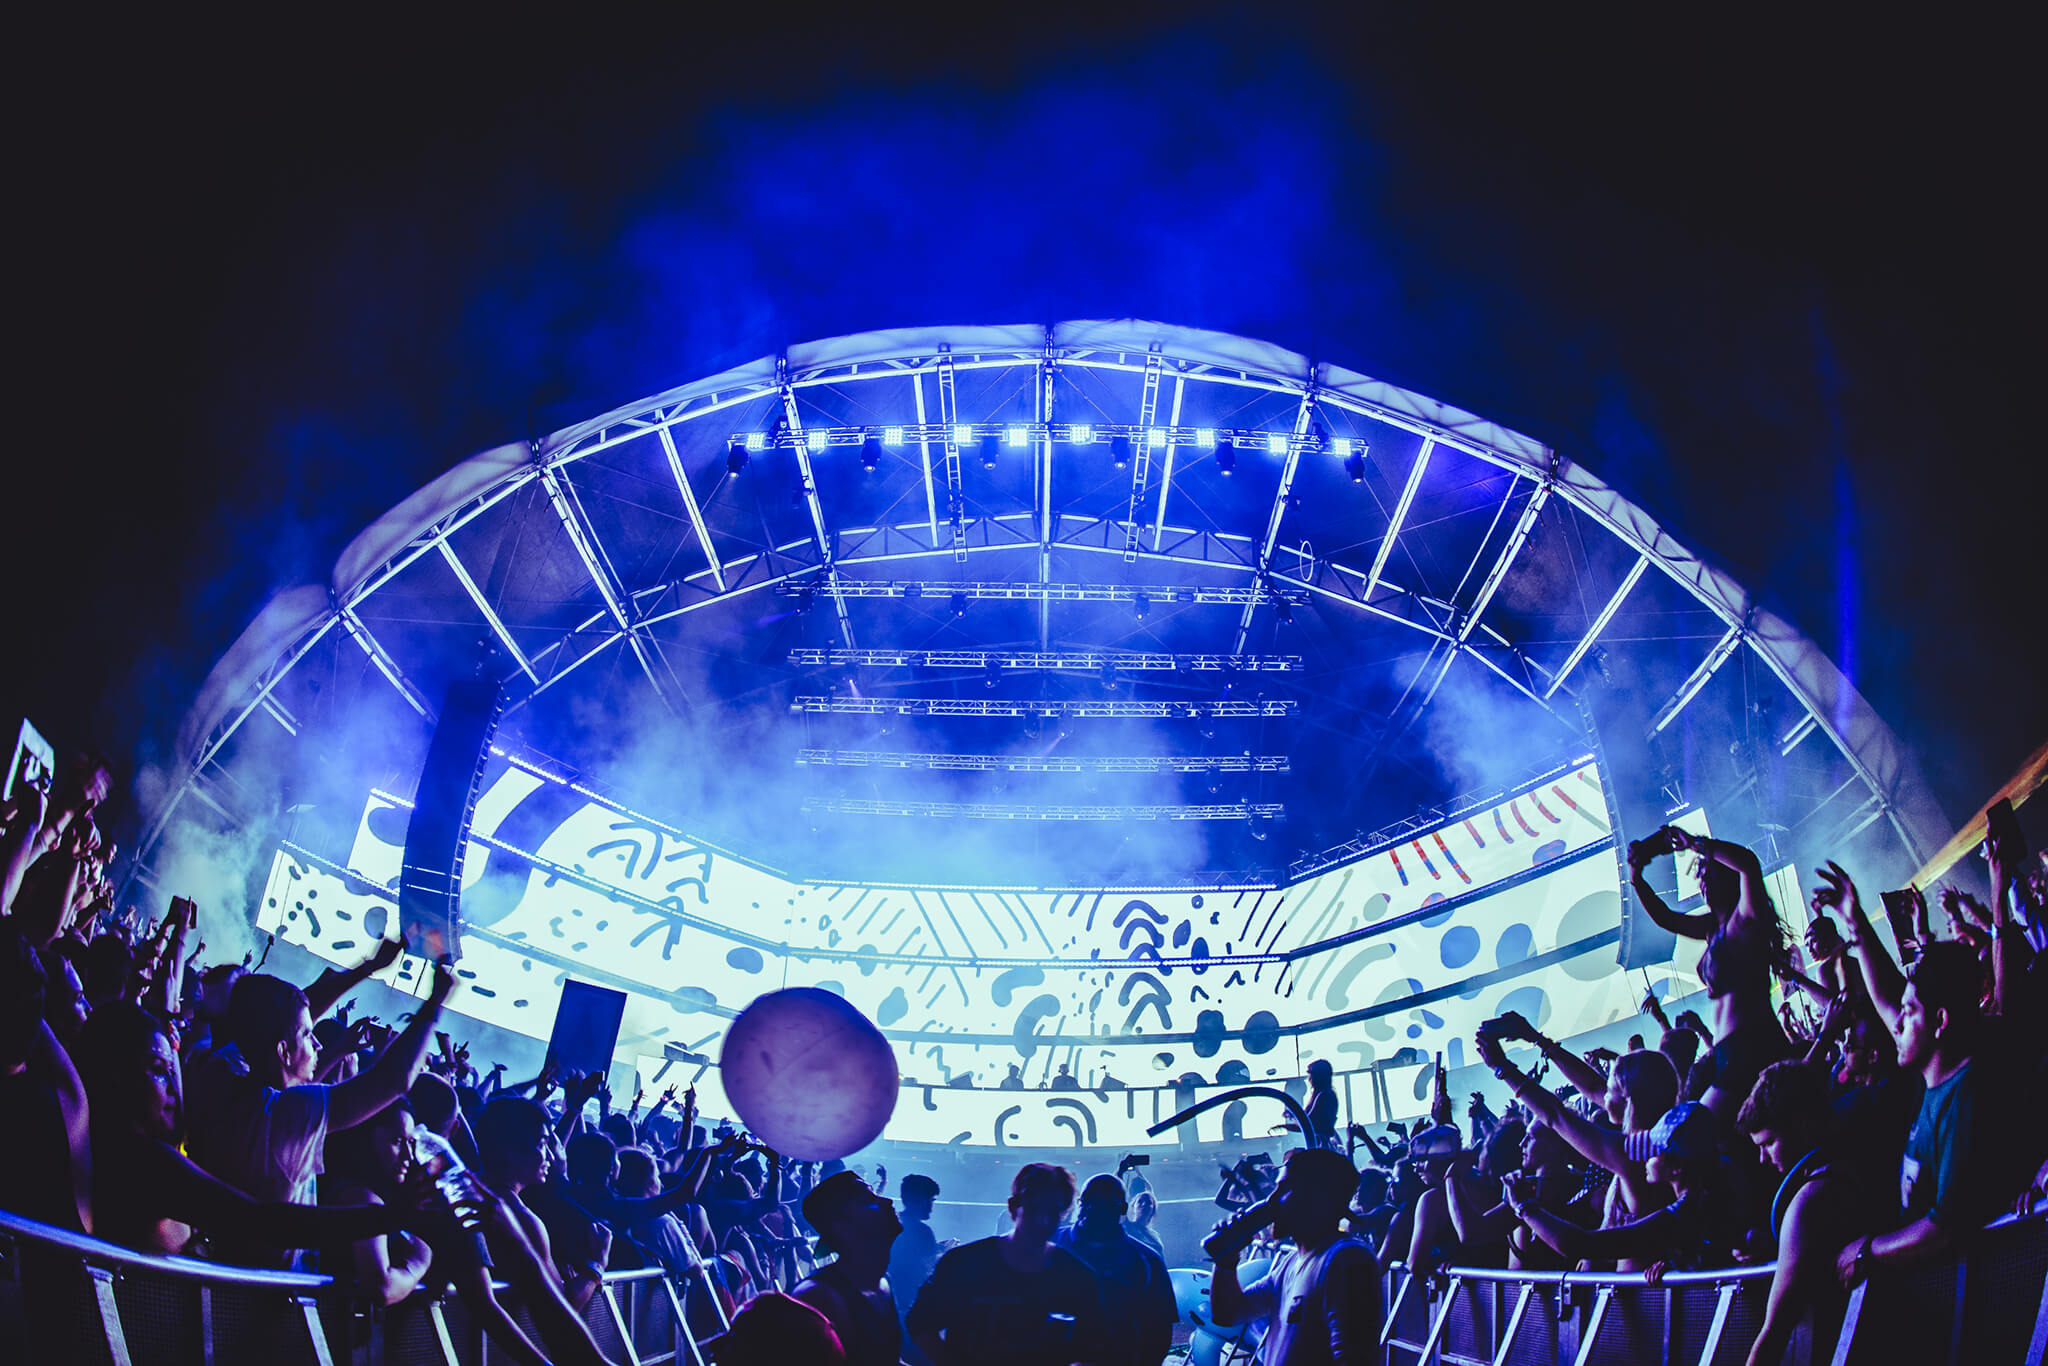 Main stage at Sunset Music Festival 2016